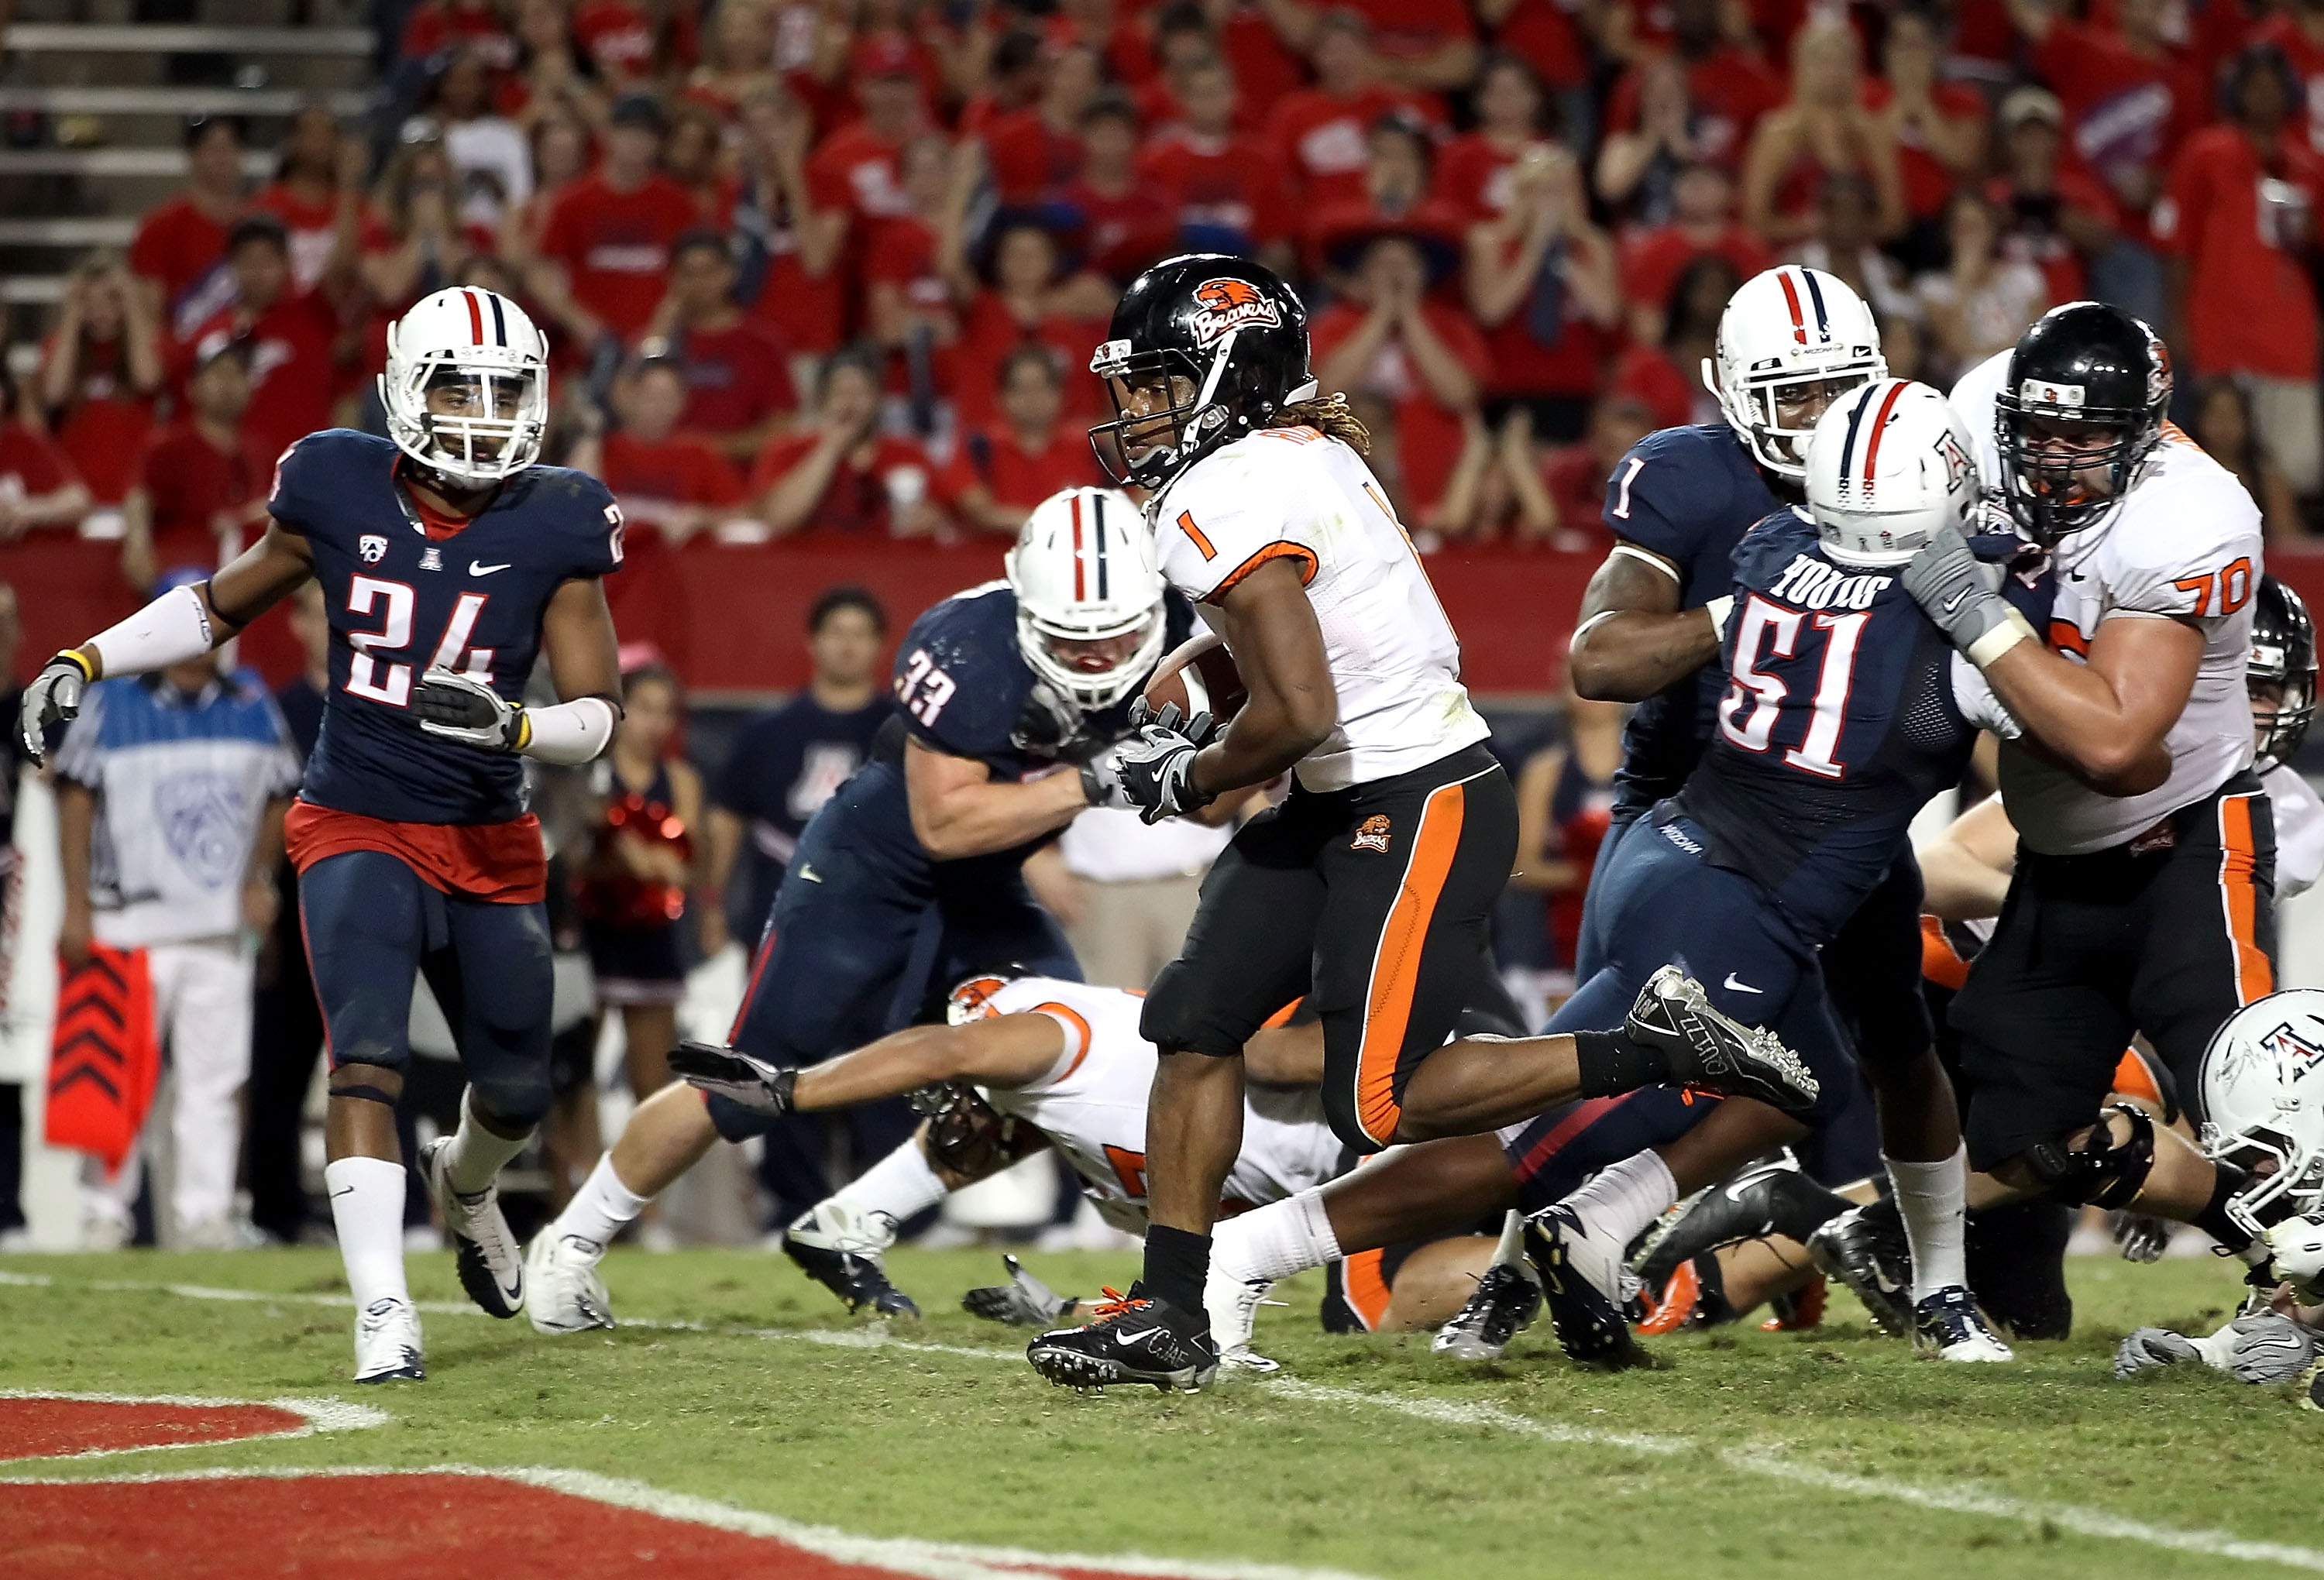 TUCSON, AZ - OCTOBER 09:  Runningback Jacquizz Rodgers #1 of the Oregon State Beavers scores a 1 yard rushing touchdown against the Arizona Wildcats during the fourth quarter of the college football game at Arizona Stadium on October 9, 2010 in Tucson, Ar